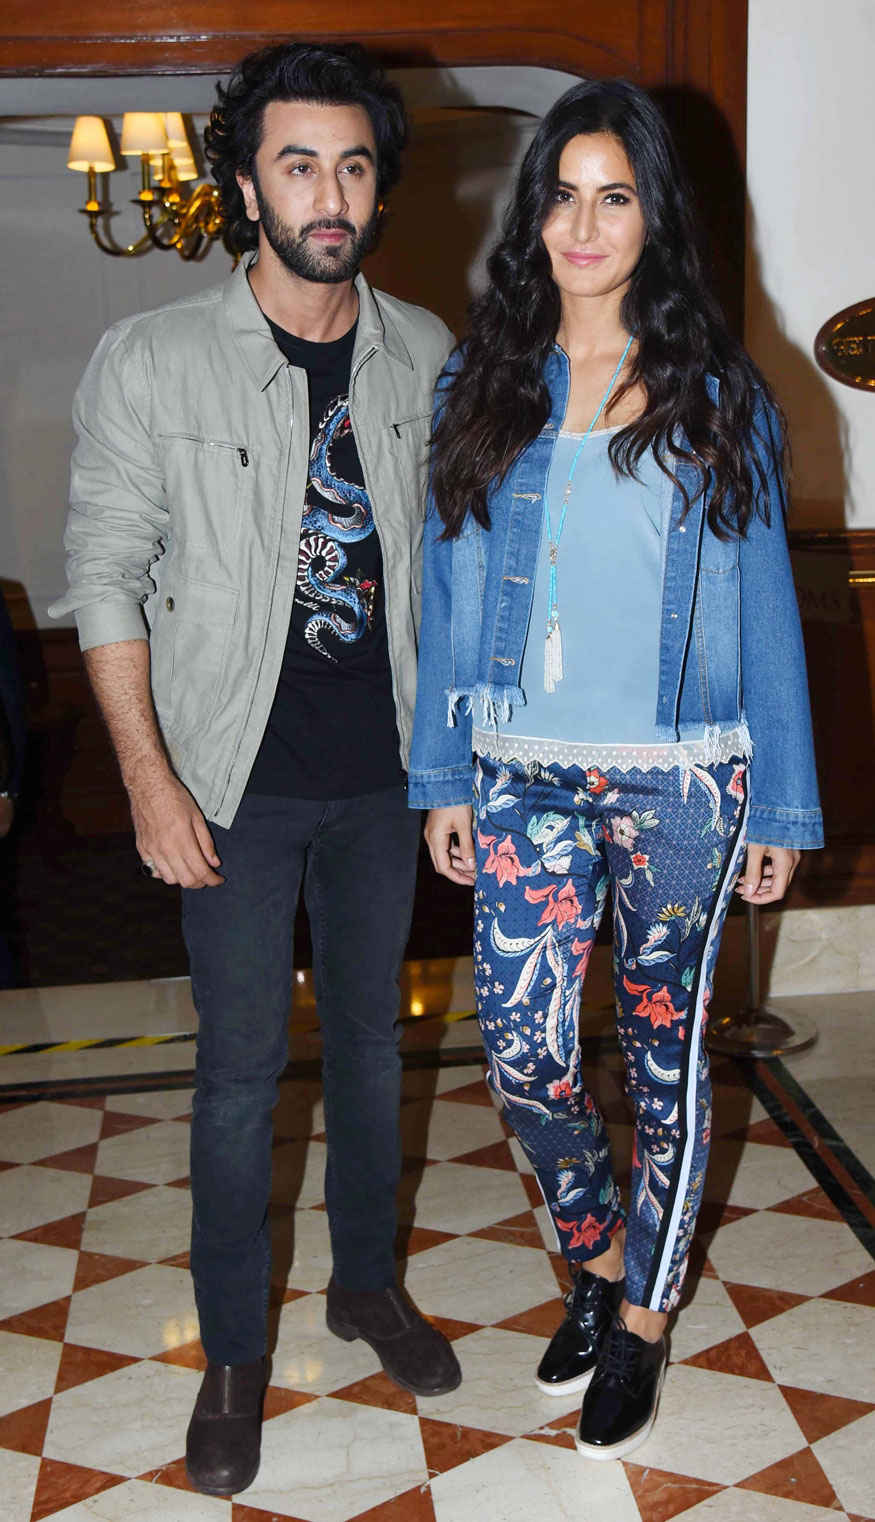 Ranbir Kapoor and Katrina Kaif for Promotion of 'Jagga Jasoos' In Delhi